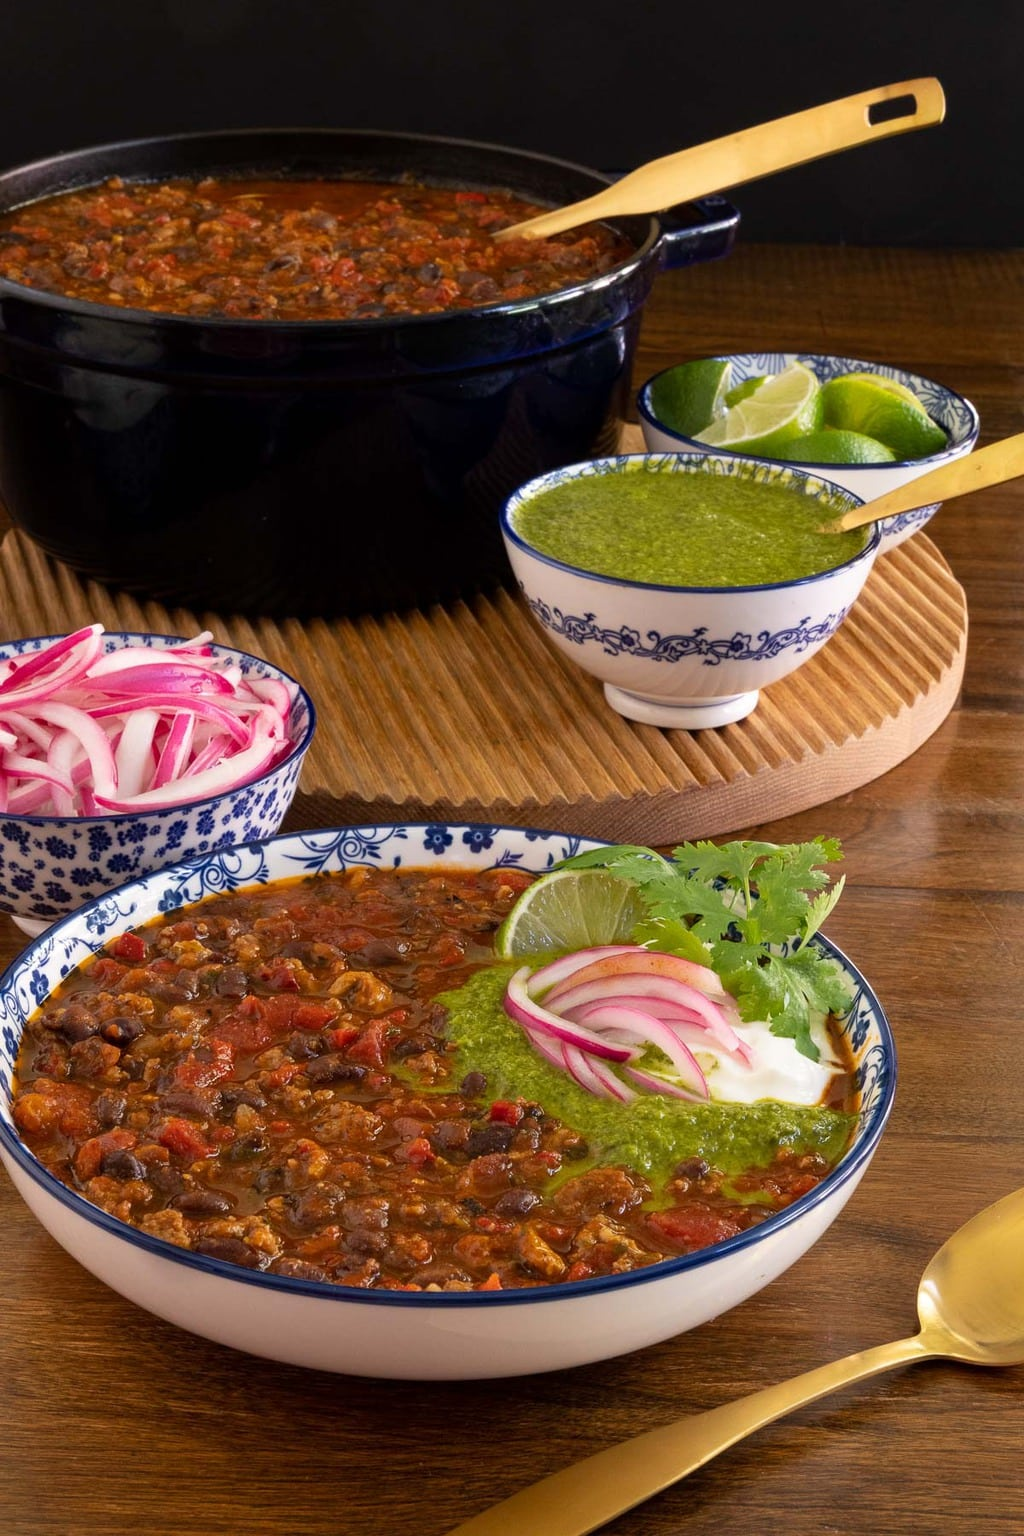 Vertical photo of a serving dish and a pot of Black Bean Turkey Chili garnished with cilantro sauce, pickled onions, fresh cilantro and lime wedges.